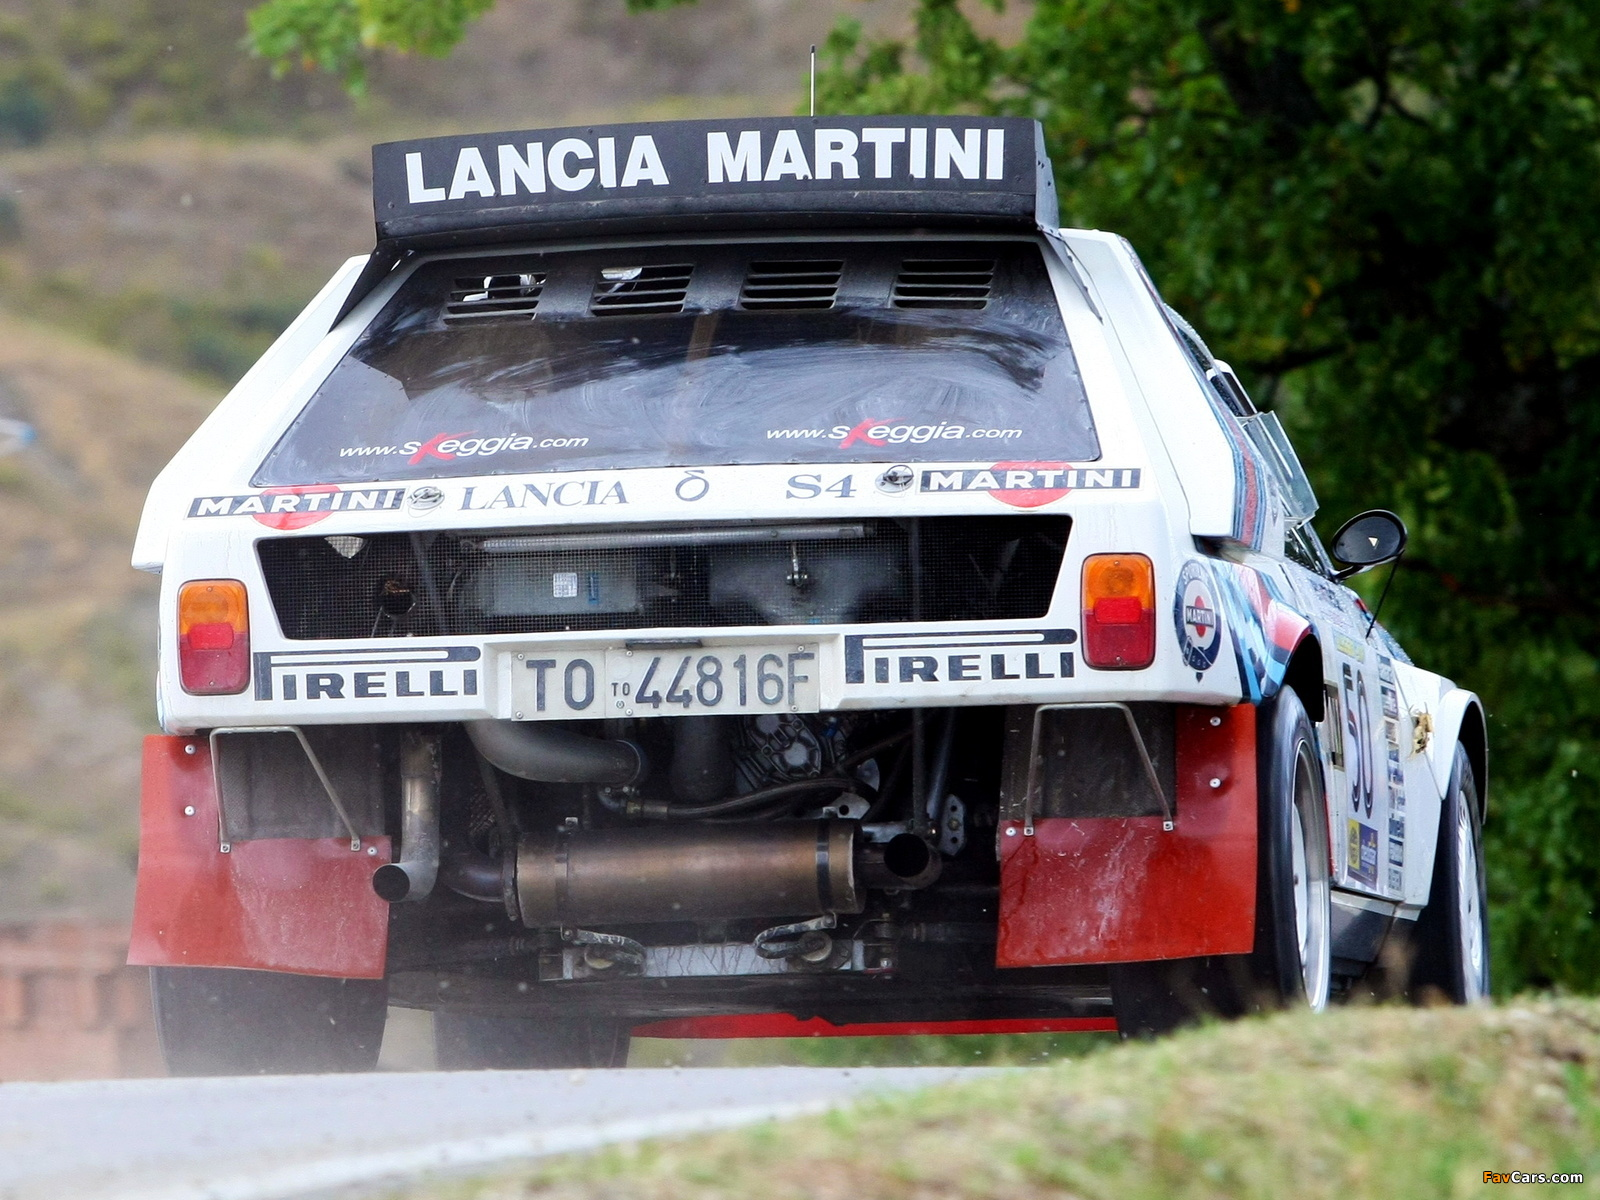 1985 Lancia Delta-S4 Race Car Racing Rally Martini Italy 4000x3000 ...